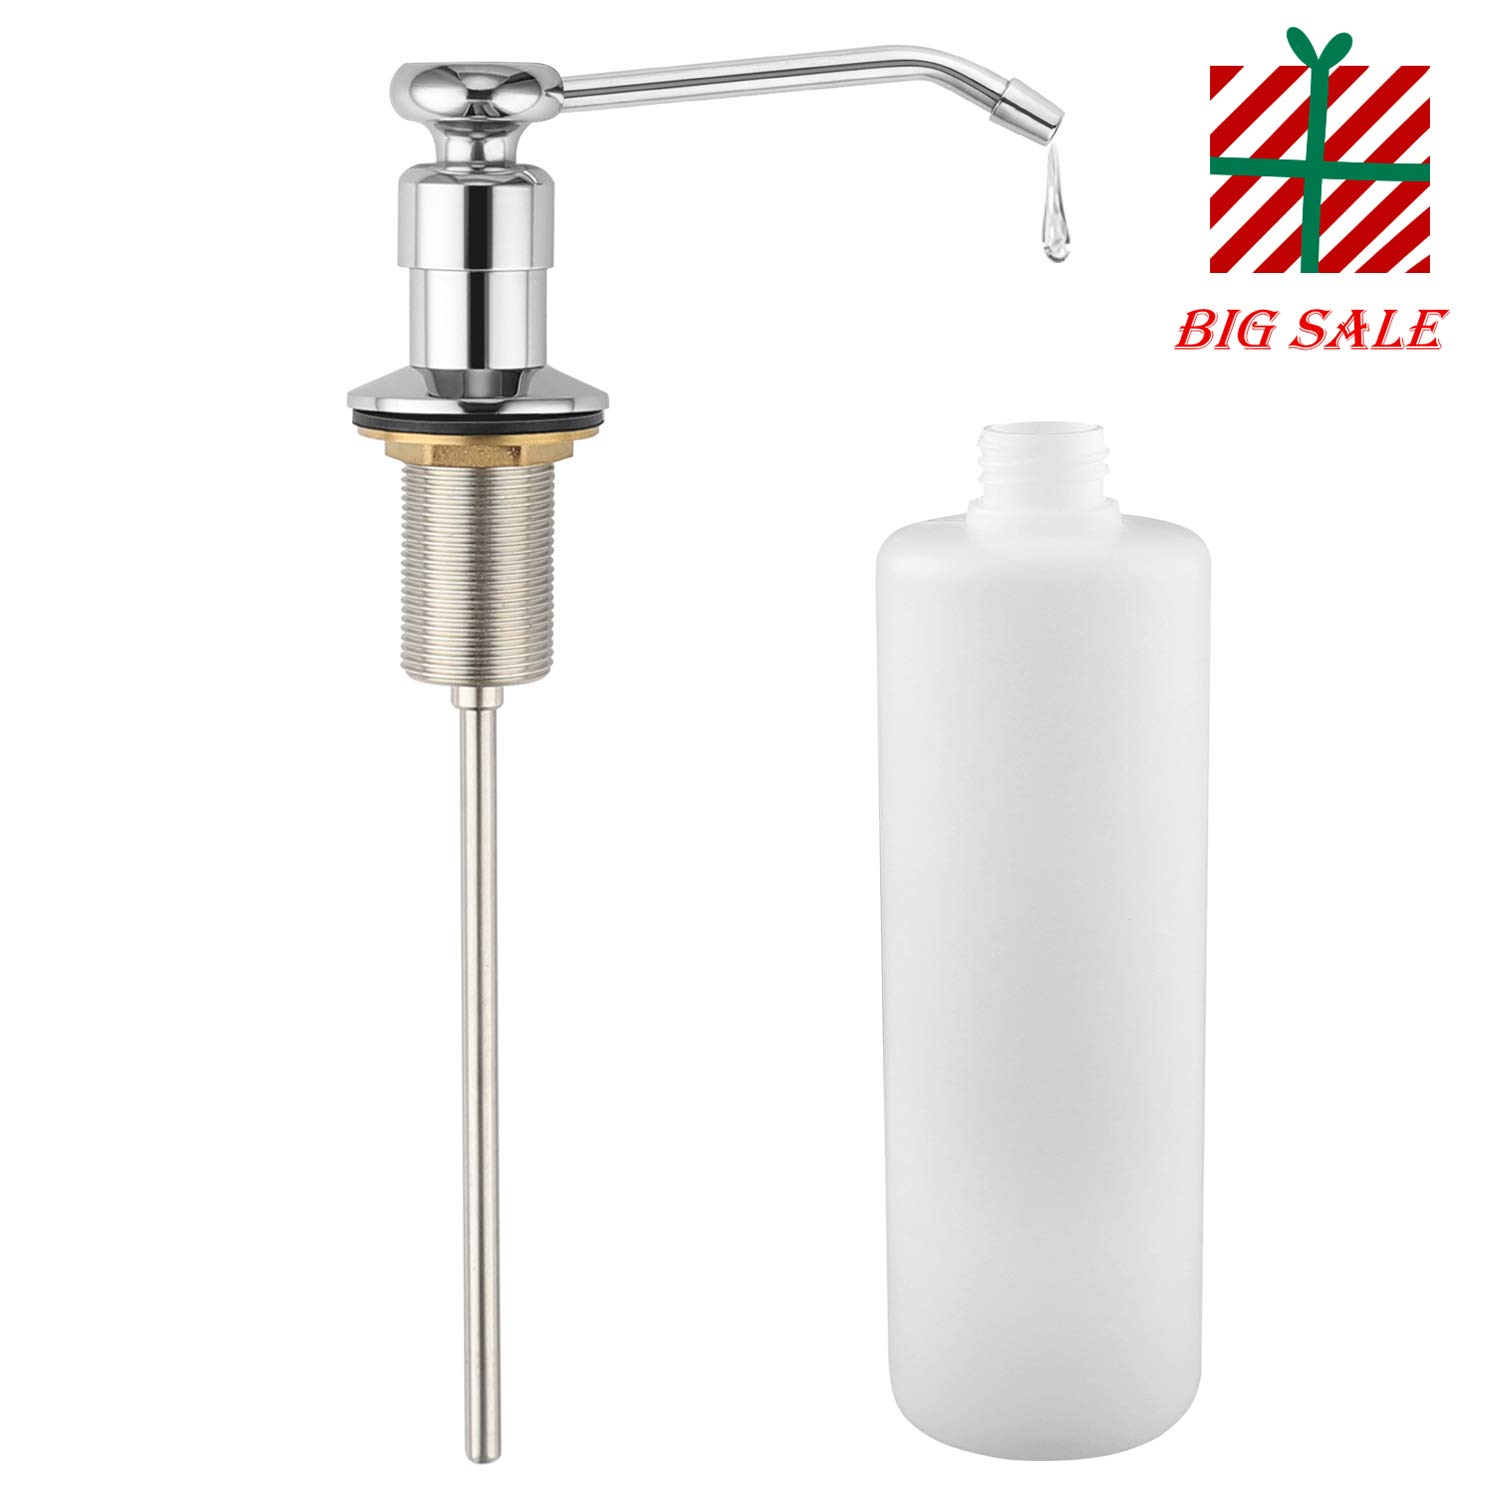 LOUYC Sink Soap Dispenser Built in Soap Dispenser Pump Pure Head Made of Copper Material (Chrome Plated)